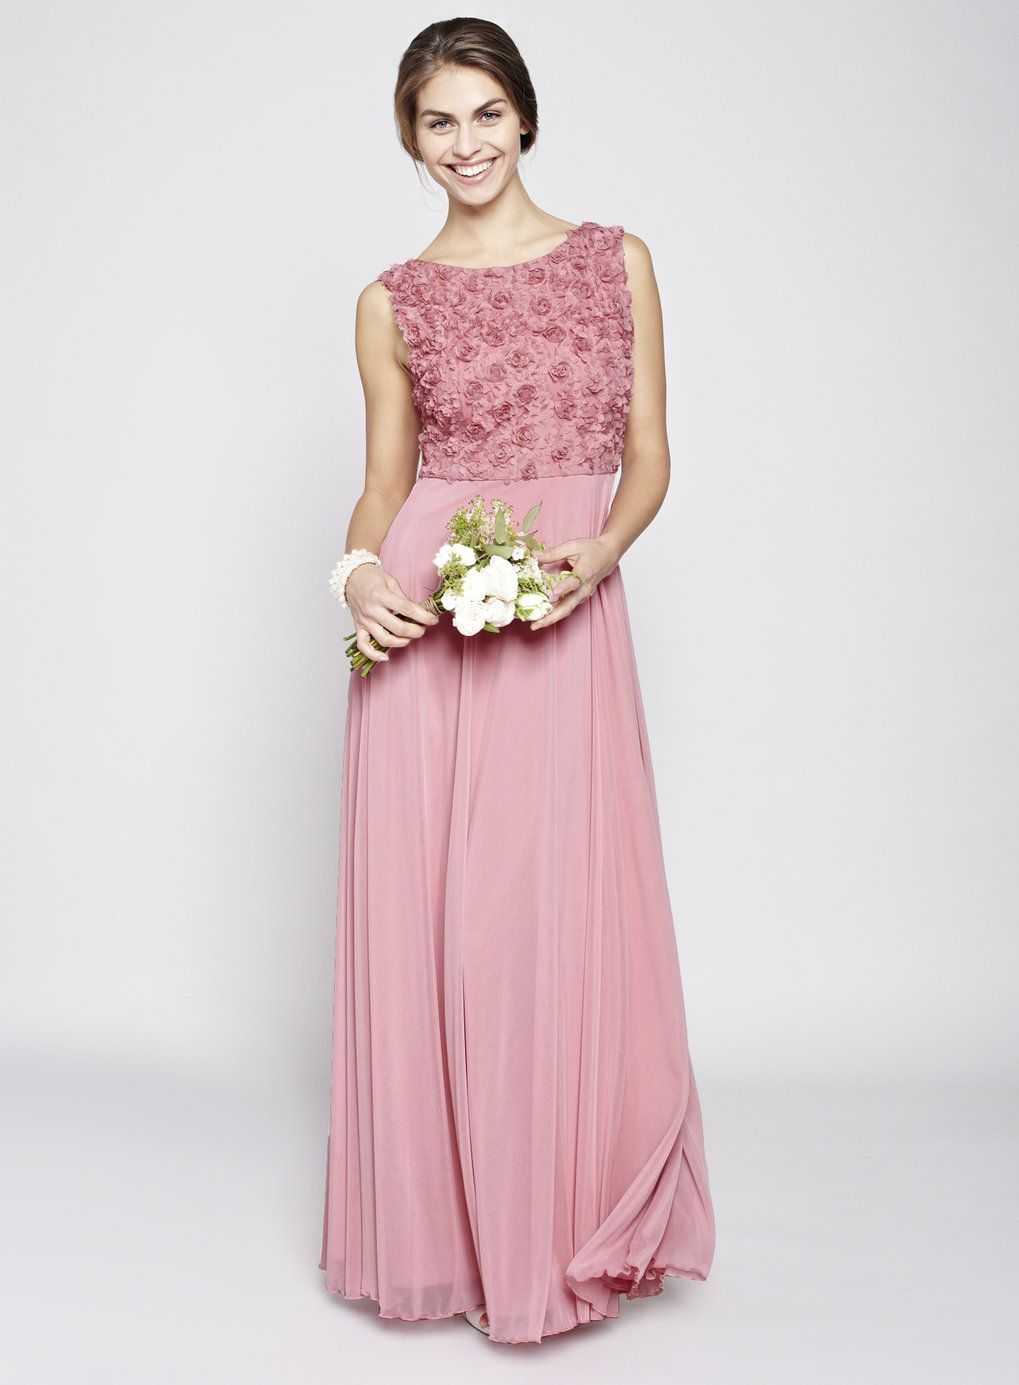 Rose Pink Rosie Long Bridesmaid Dress This Shows As GBP88 In The Sale On